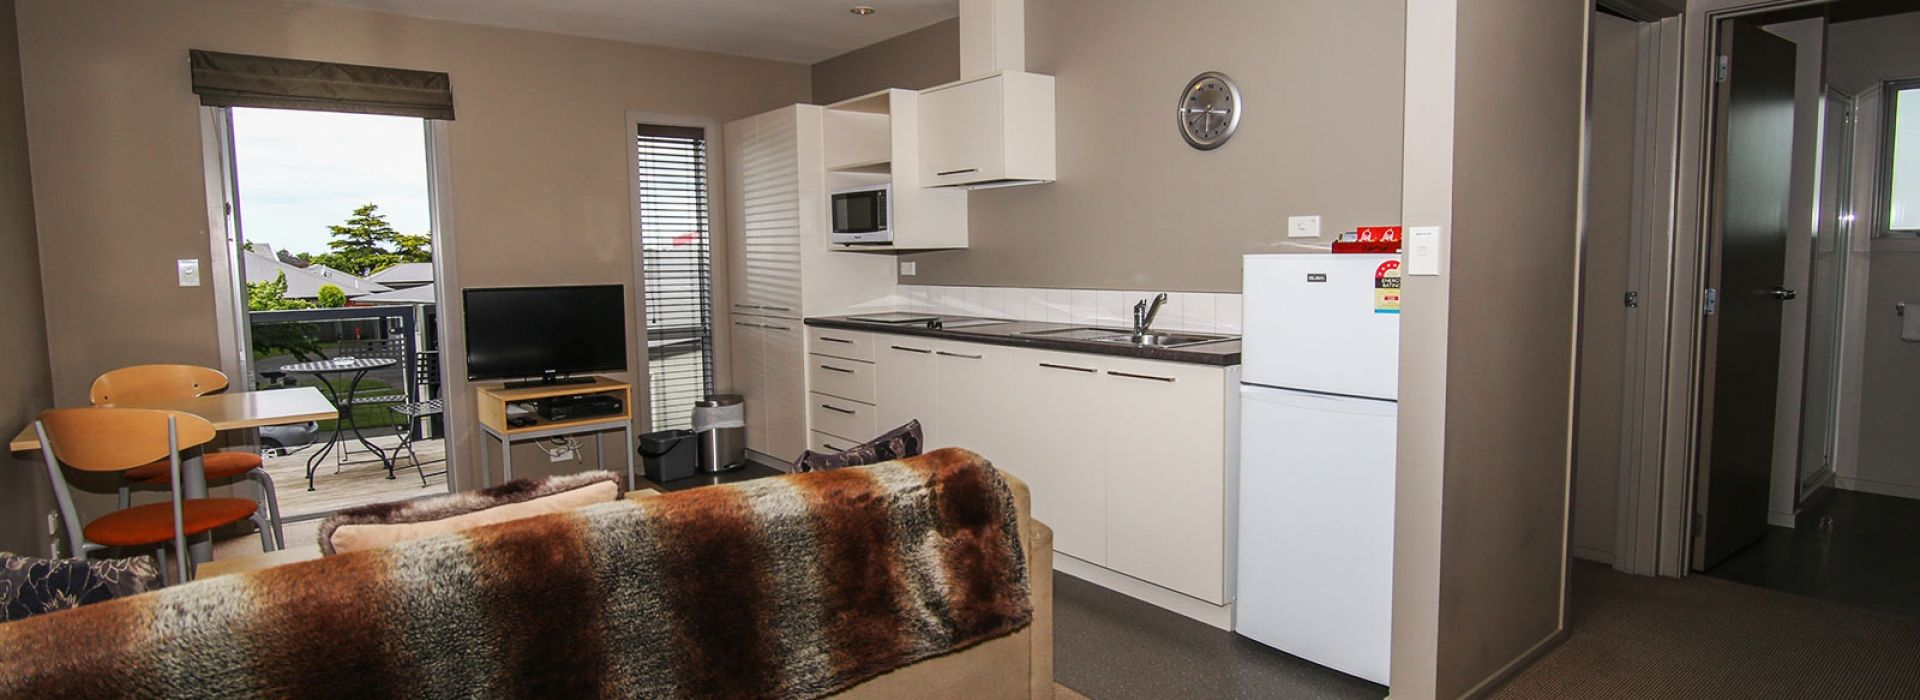 Deluxe Motel Accommodation Christchurch